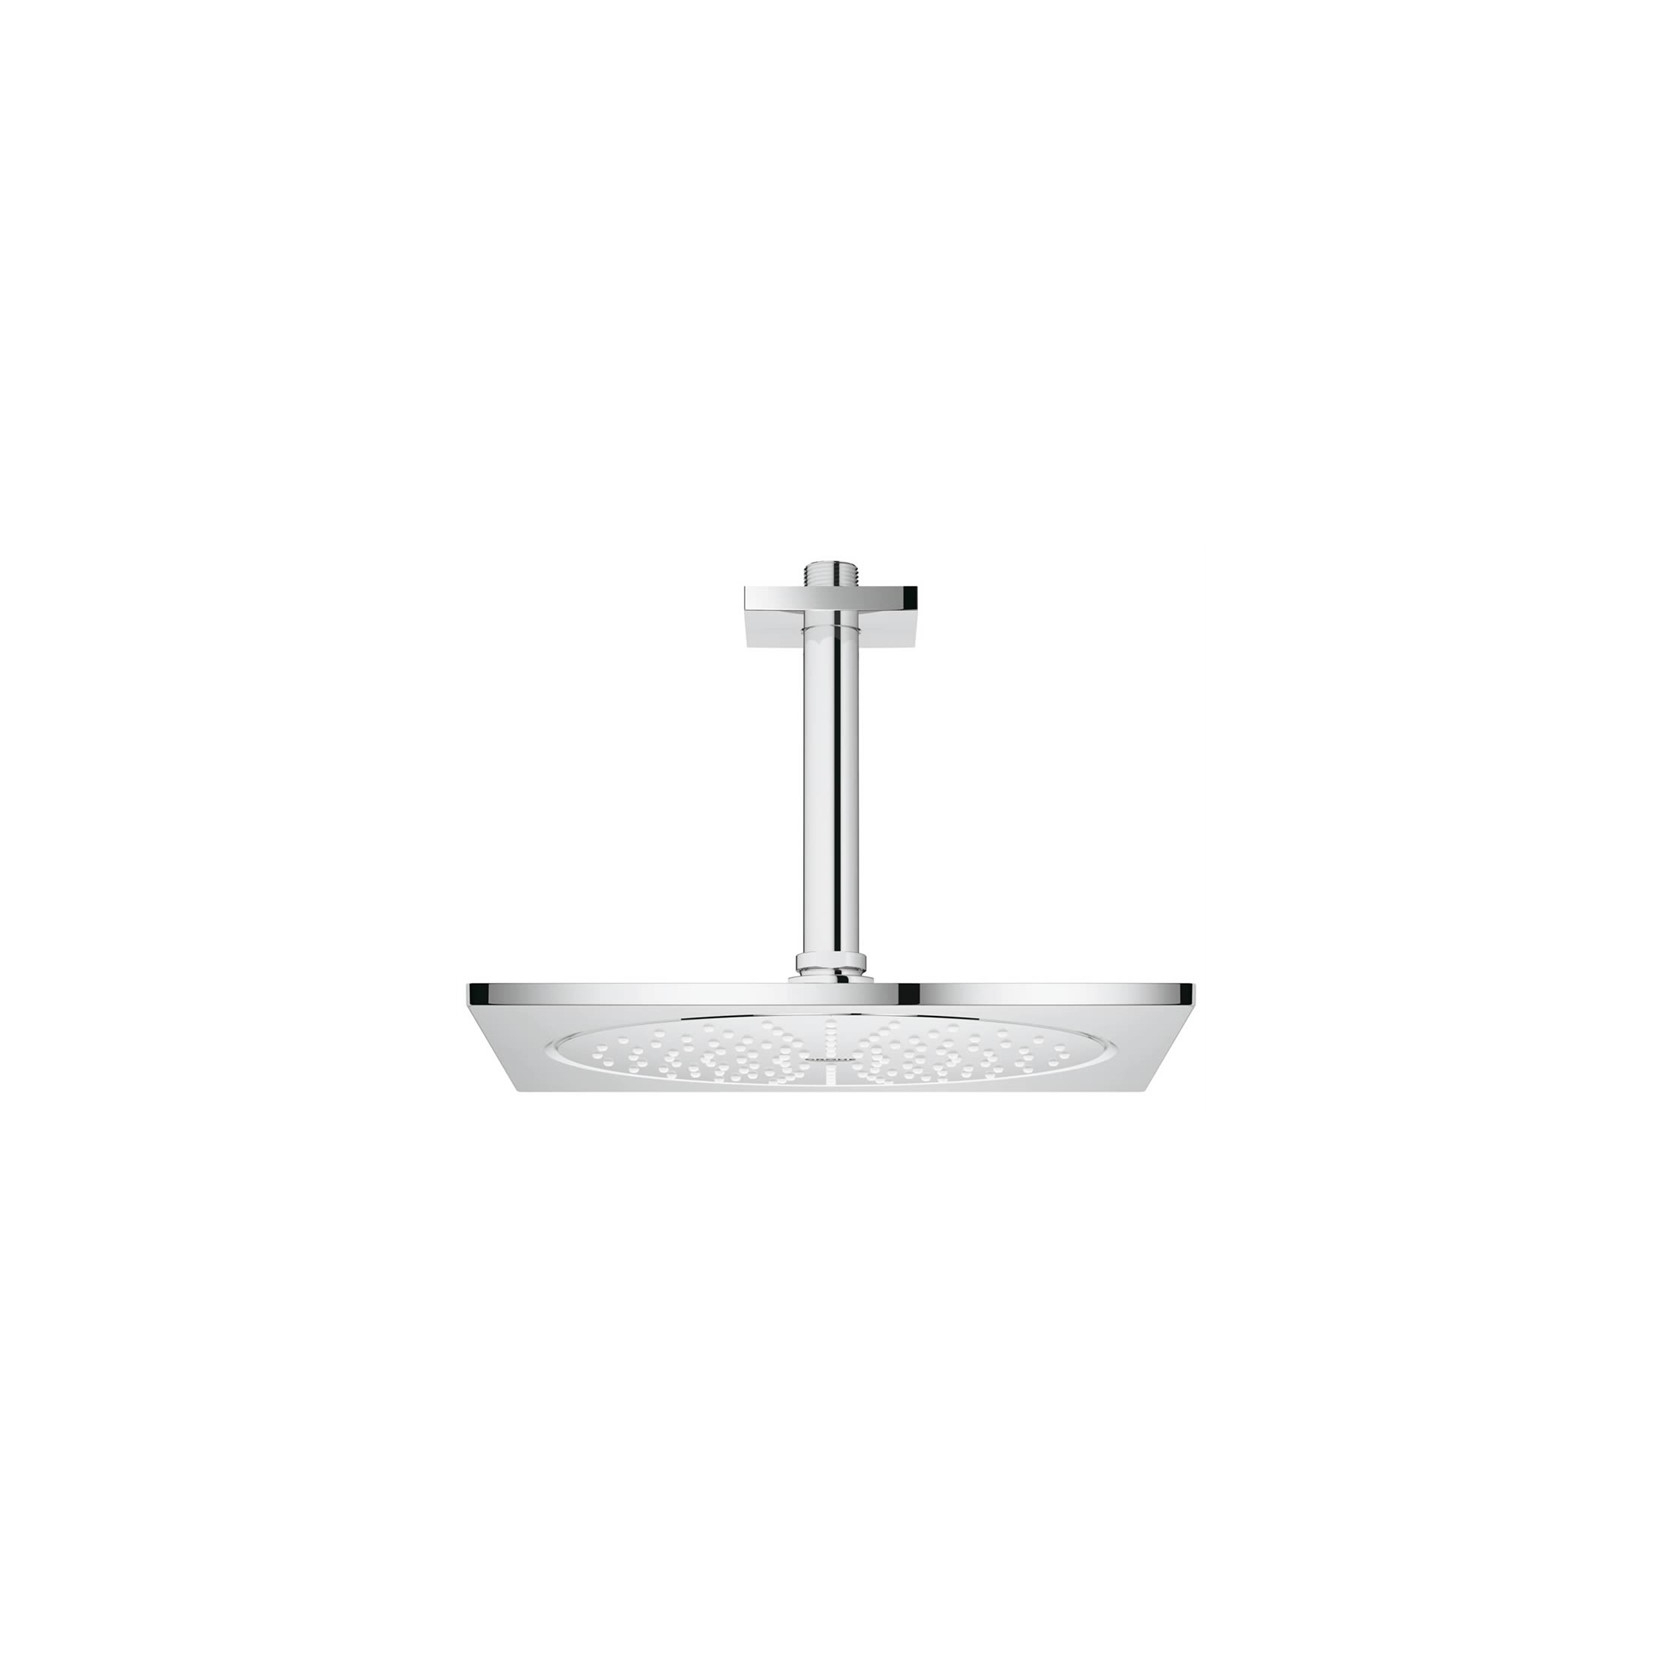 grohe f series head shower set ceiling 254x254 tattahome. Black Bedroom Furniture Sets. Home Design Ideas